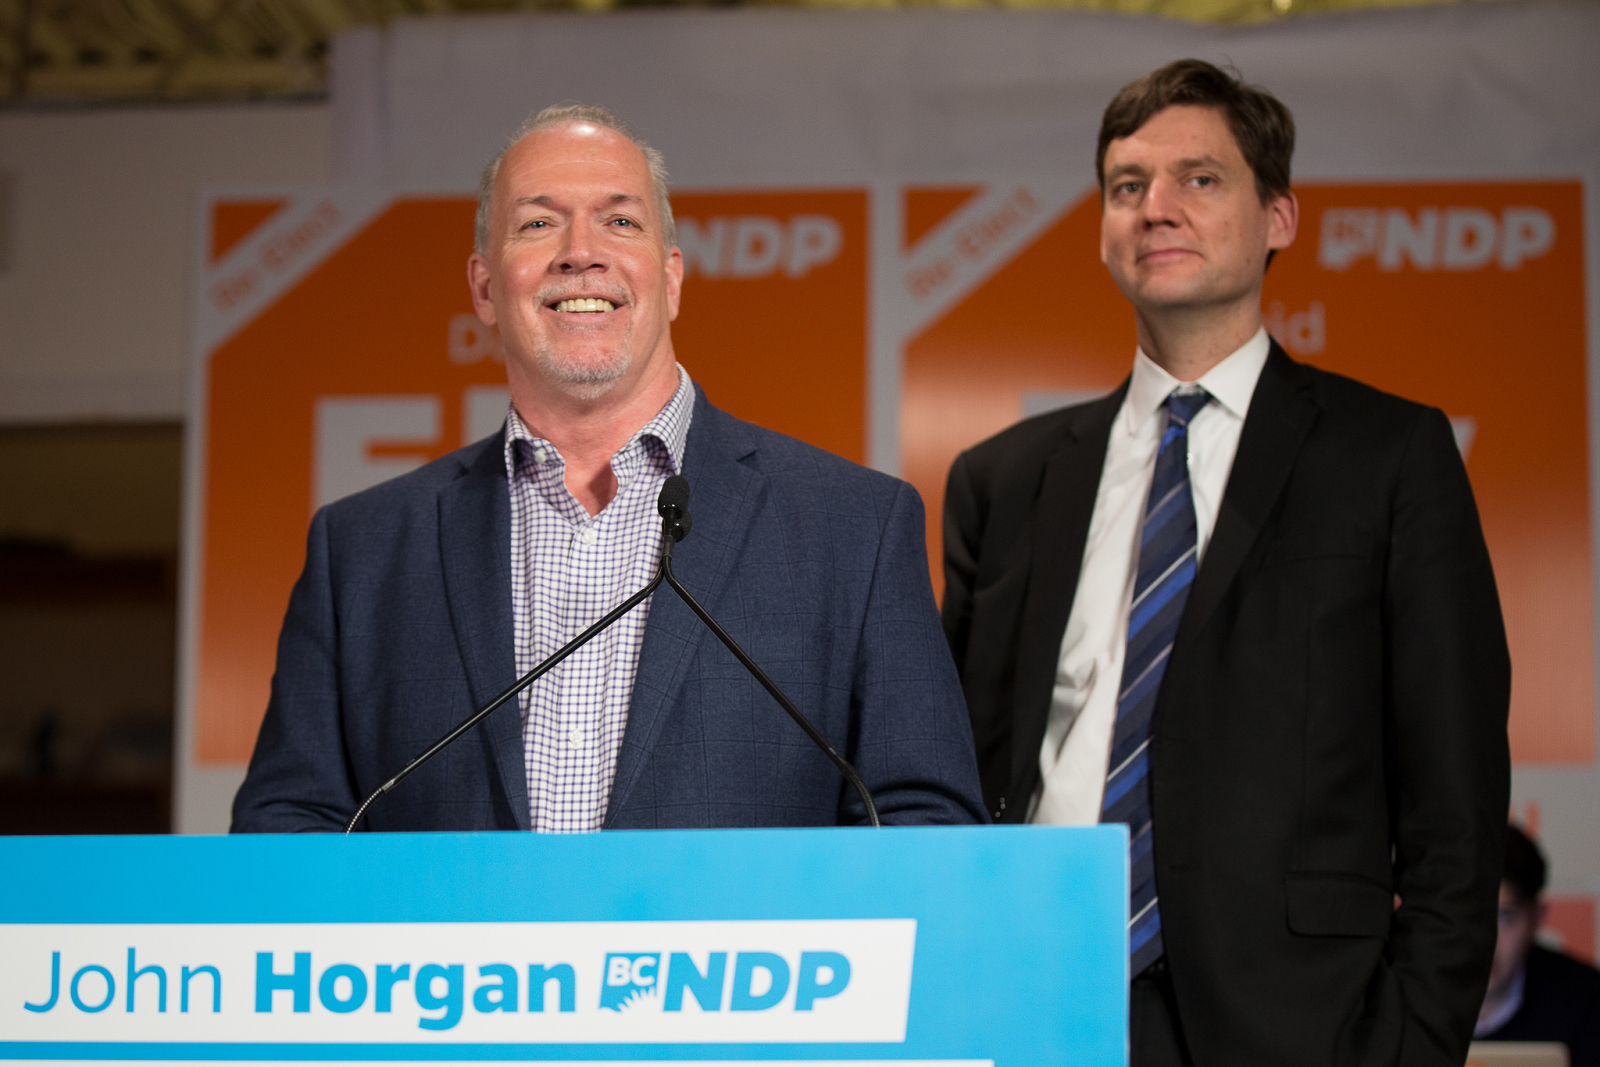 BC NDP leader John Horgan and Attorney General David Eby